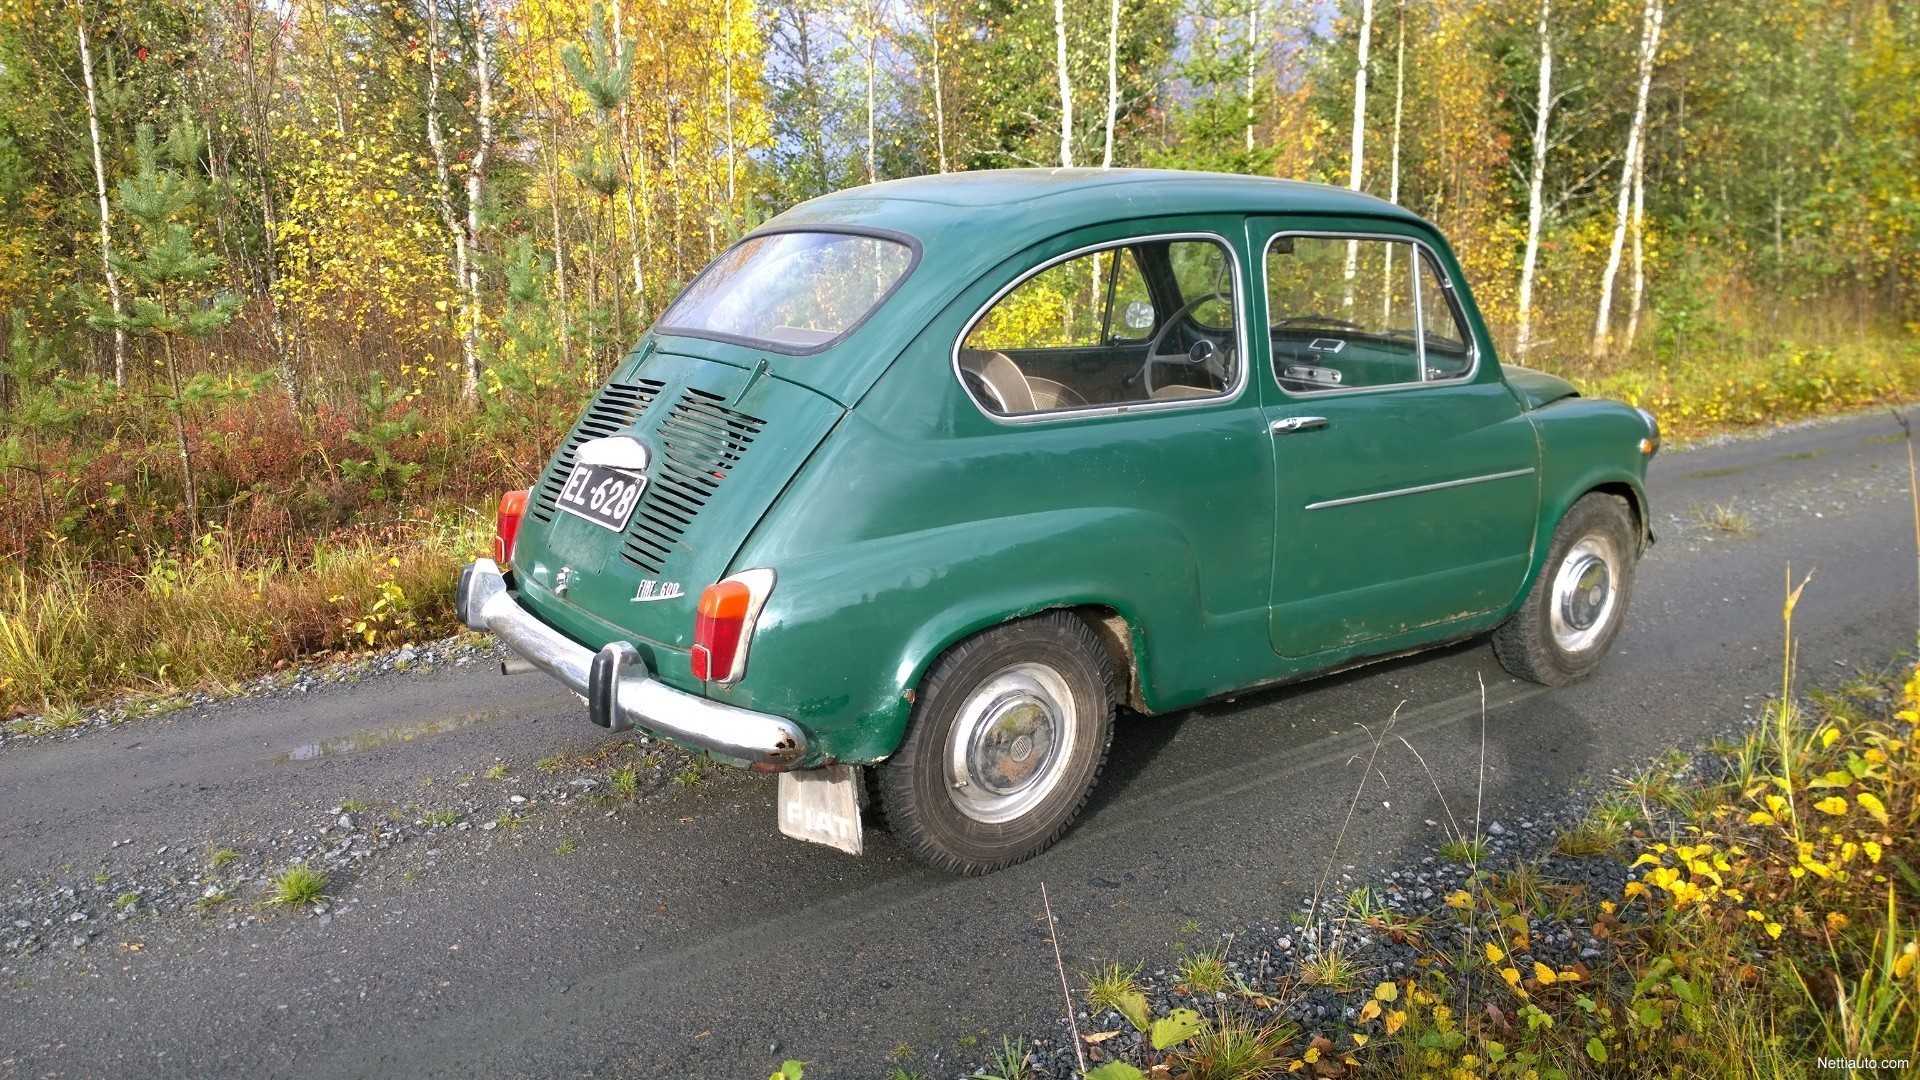 1971 Seat 600 - / FIAT 600 E of 1971 with 5,874 km ... |Fiat 600 1971